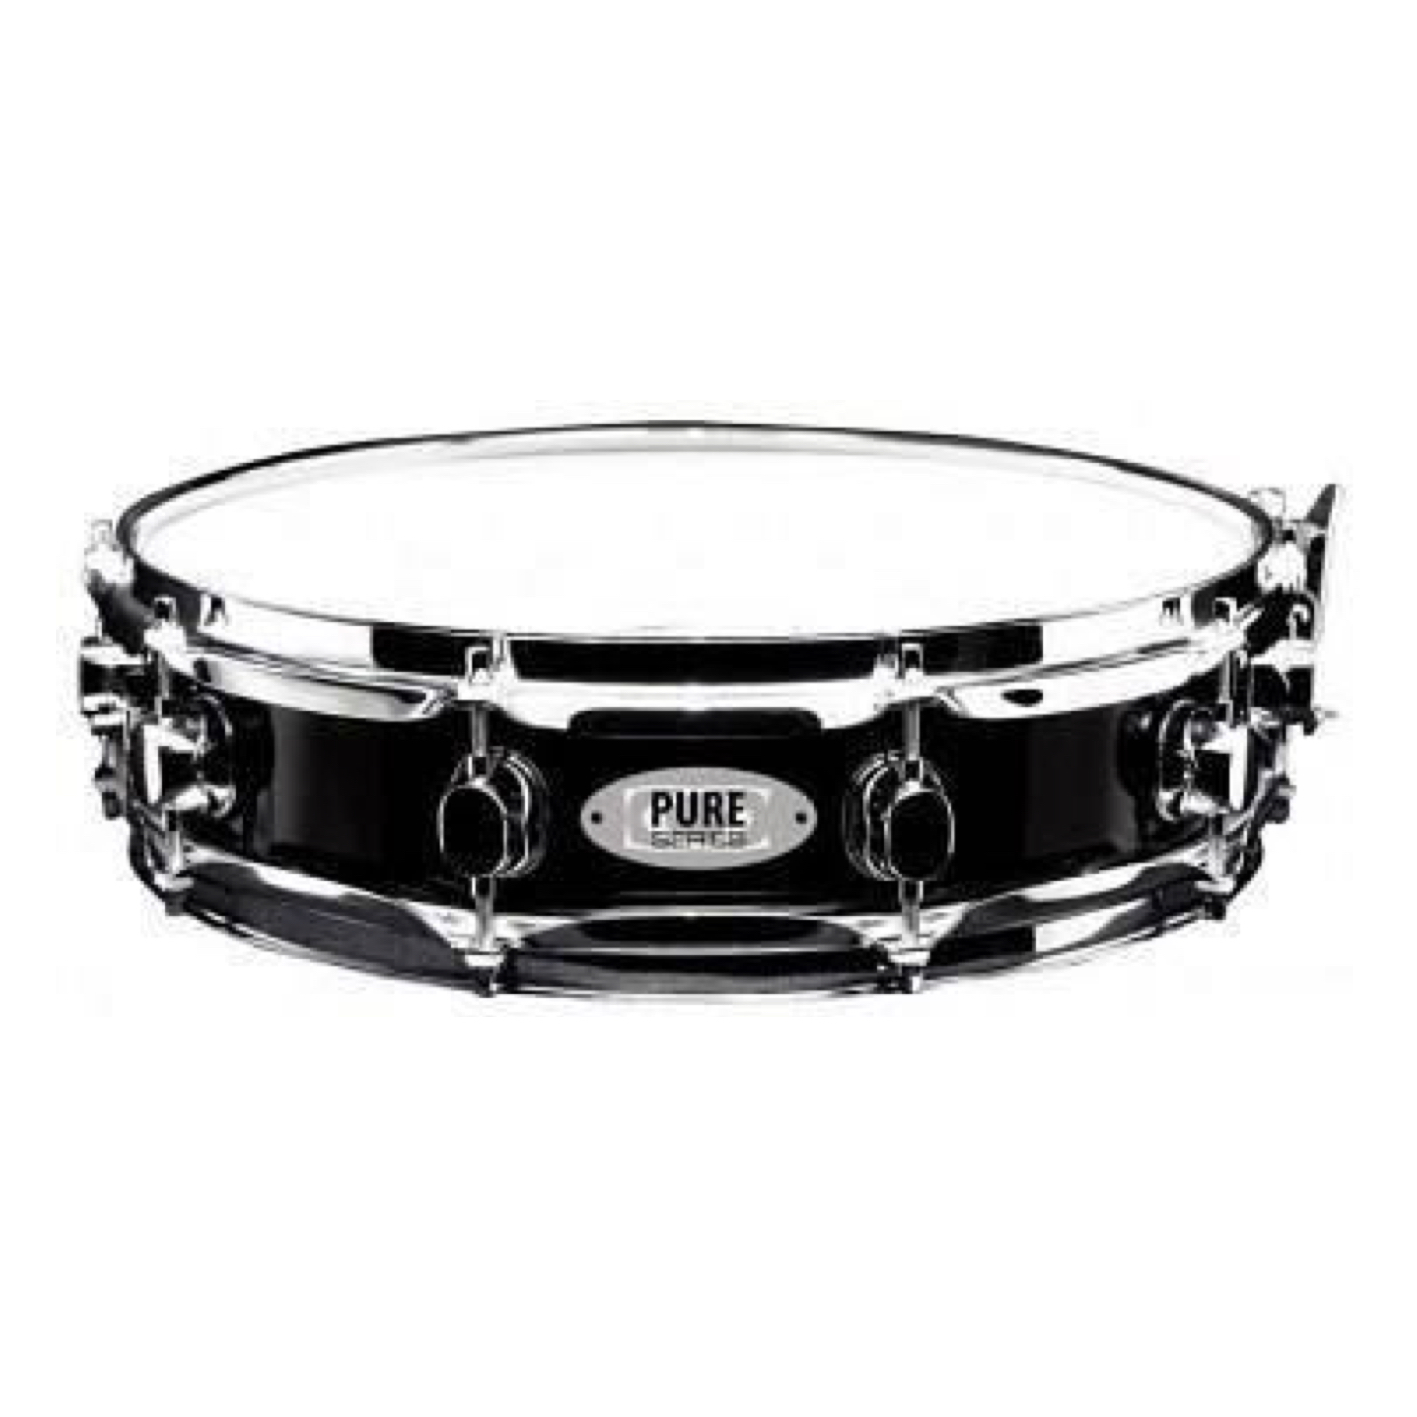 "Drum Craft PS801123 Piccolo Wood Snare Drum  14"" x 3.5"""